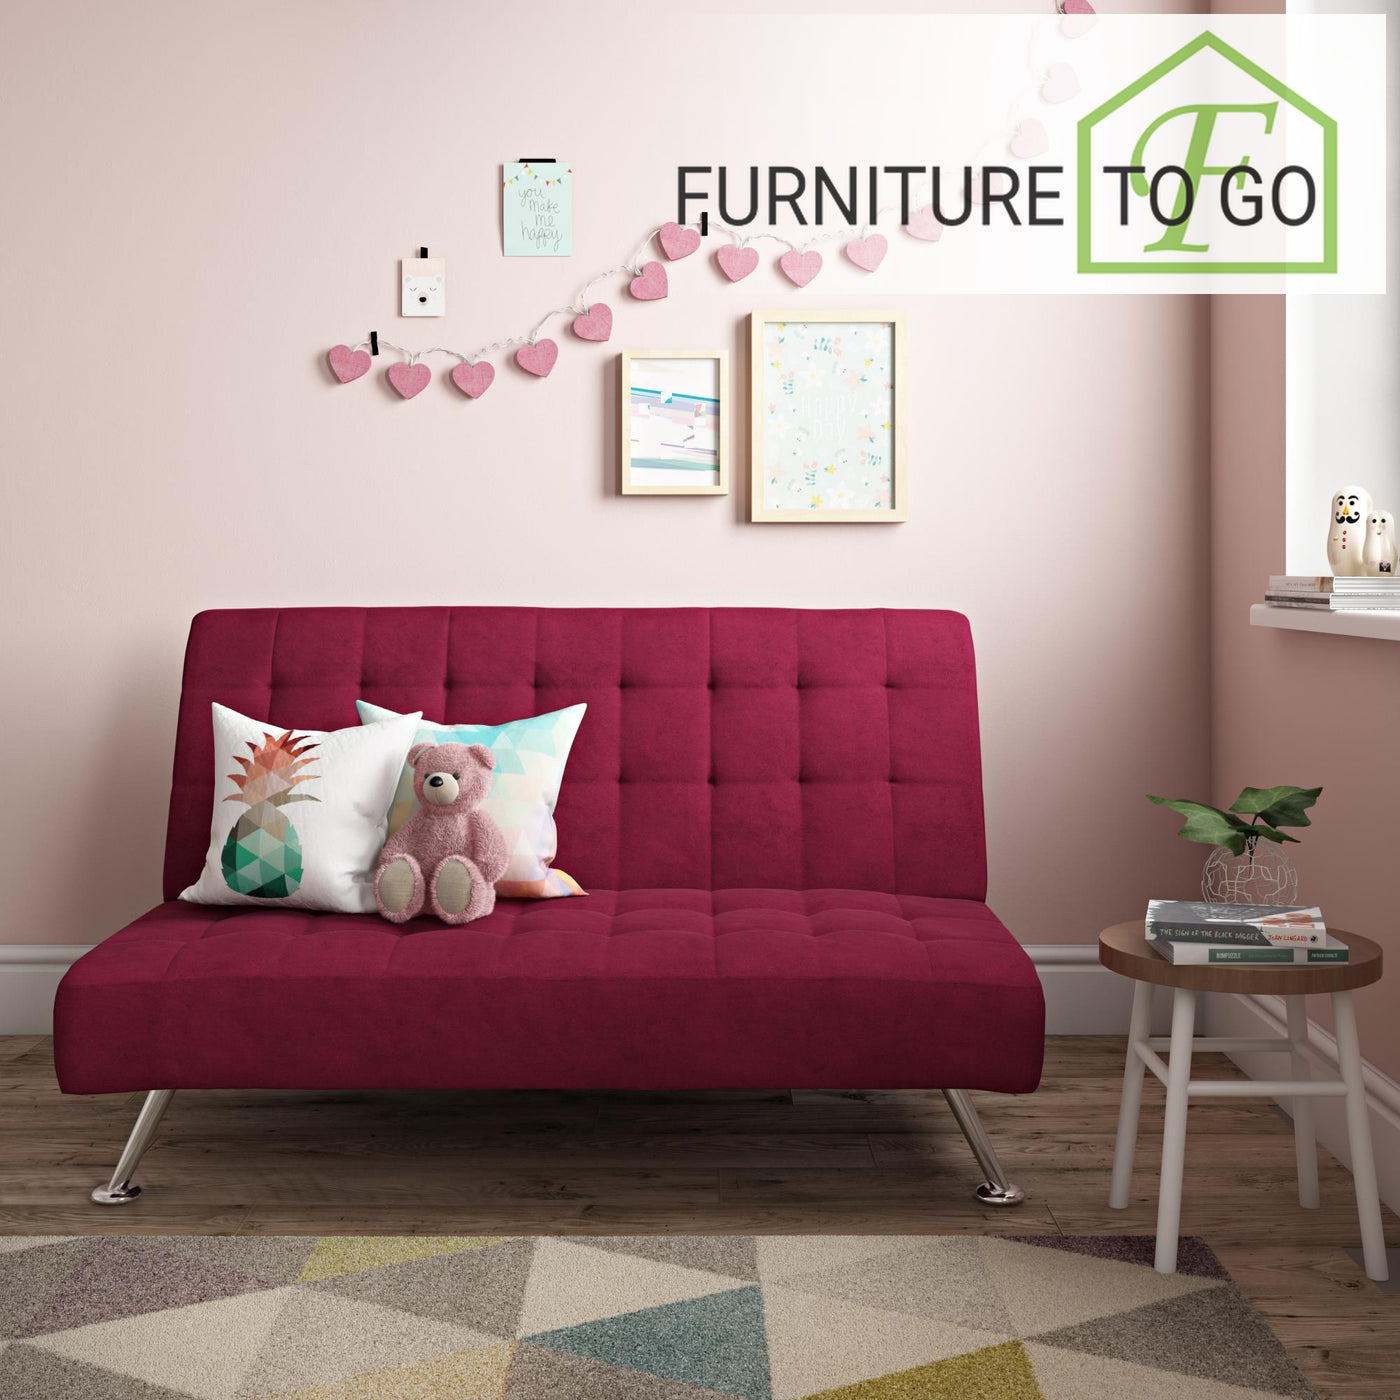 Pleasant Clearance Furniture In Dallas 60 00 Dhp Milo Kids Sofa Futon Pink Andrewgaddart Wooden Chair Designs For Living Room Andrewgaddartcom